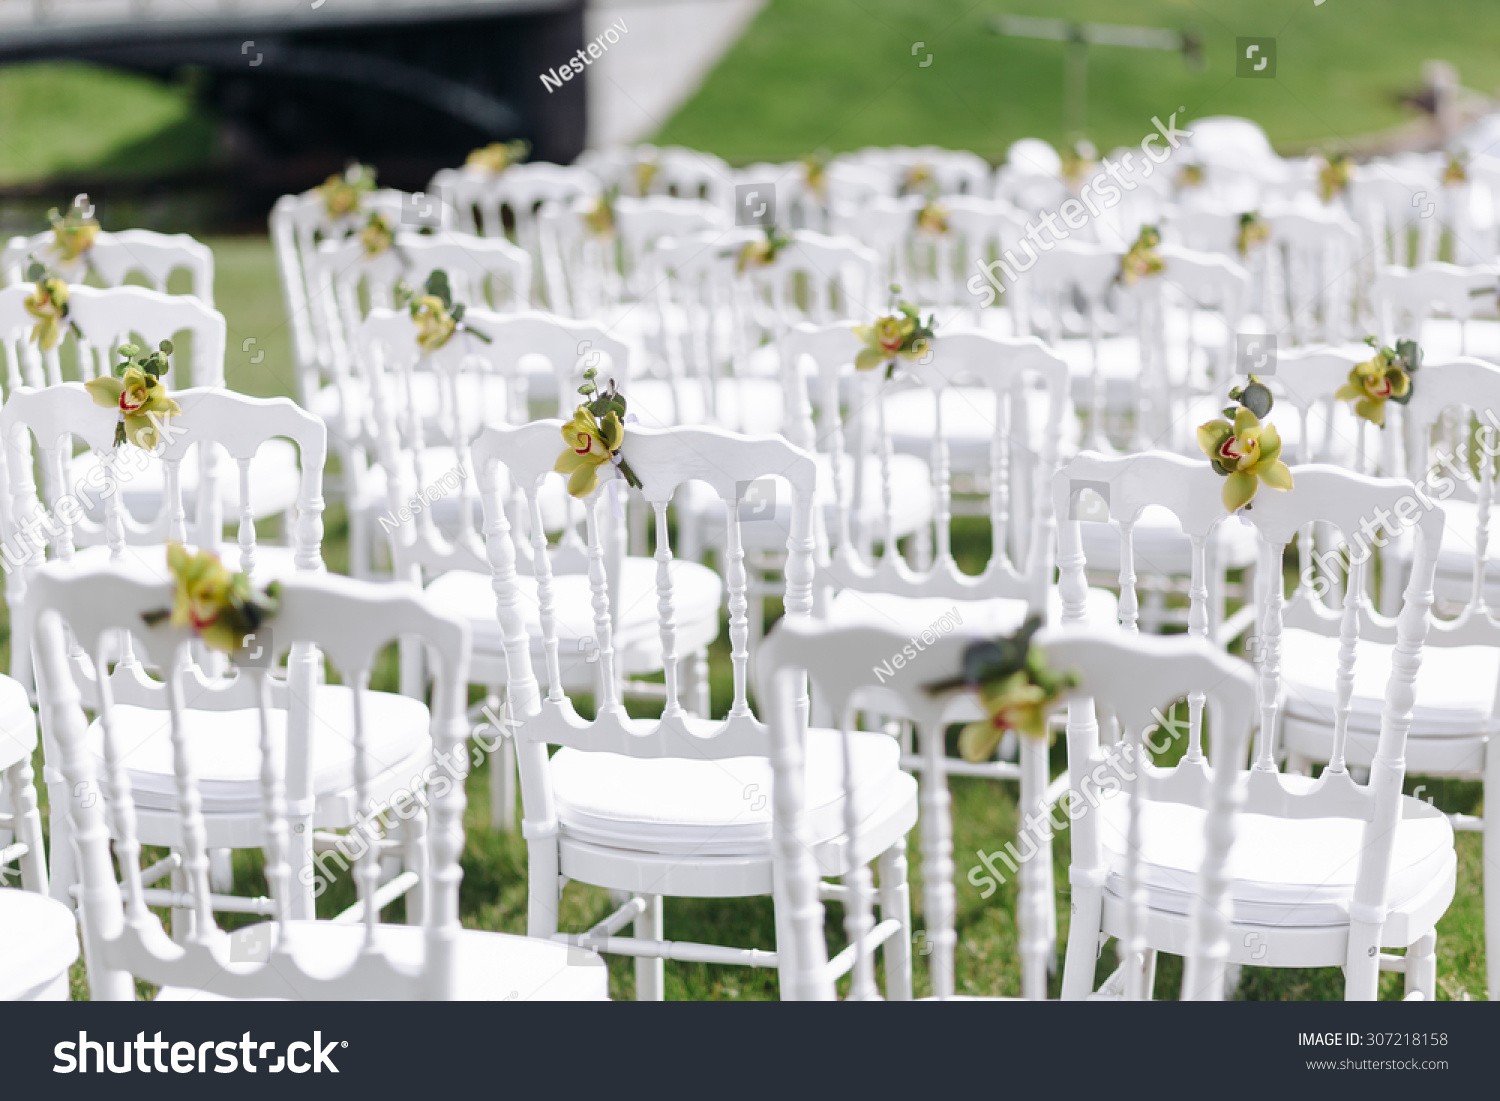 Wedding ceremony chair - White Chairs At A Wedding Ceremony Beautiful Wedding Set Up Luxury Wedding Flower Arrangement